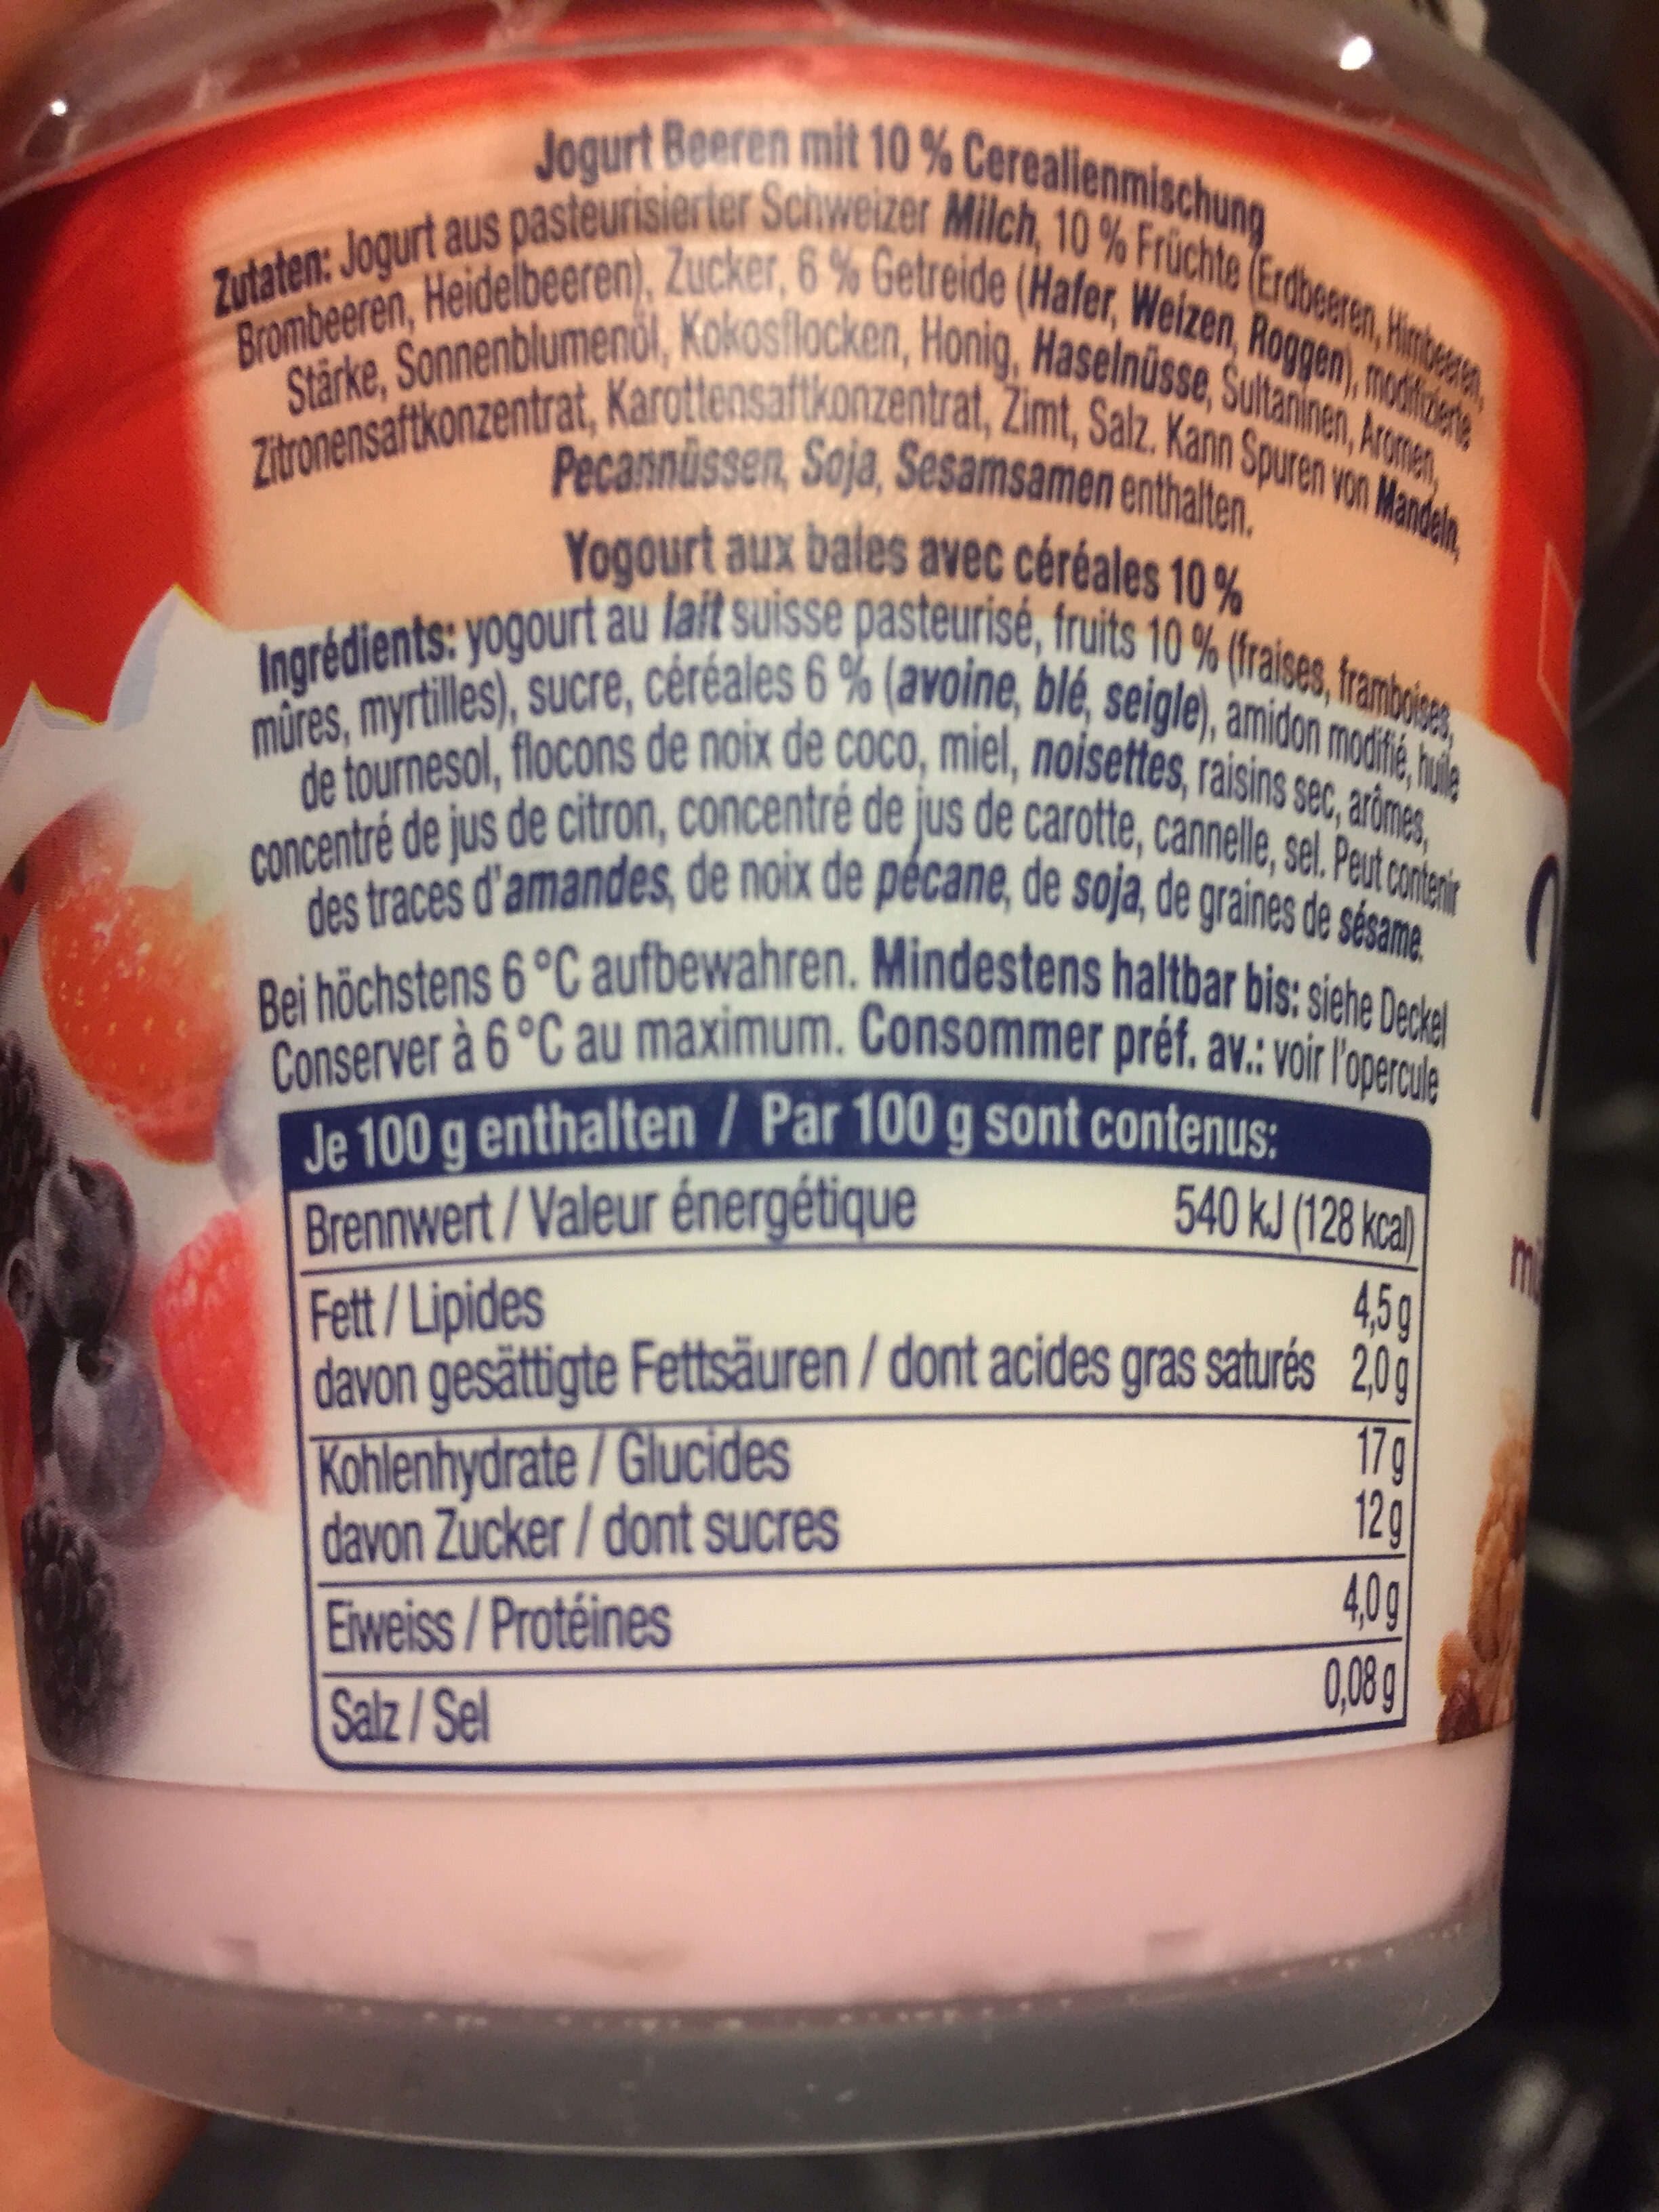 Yaourt mixit - Nutrition facts - fr